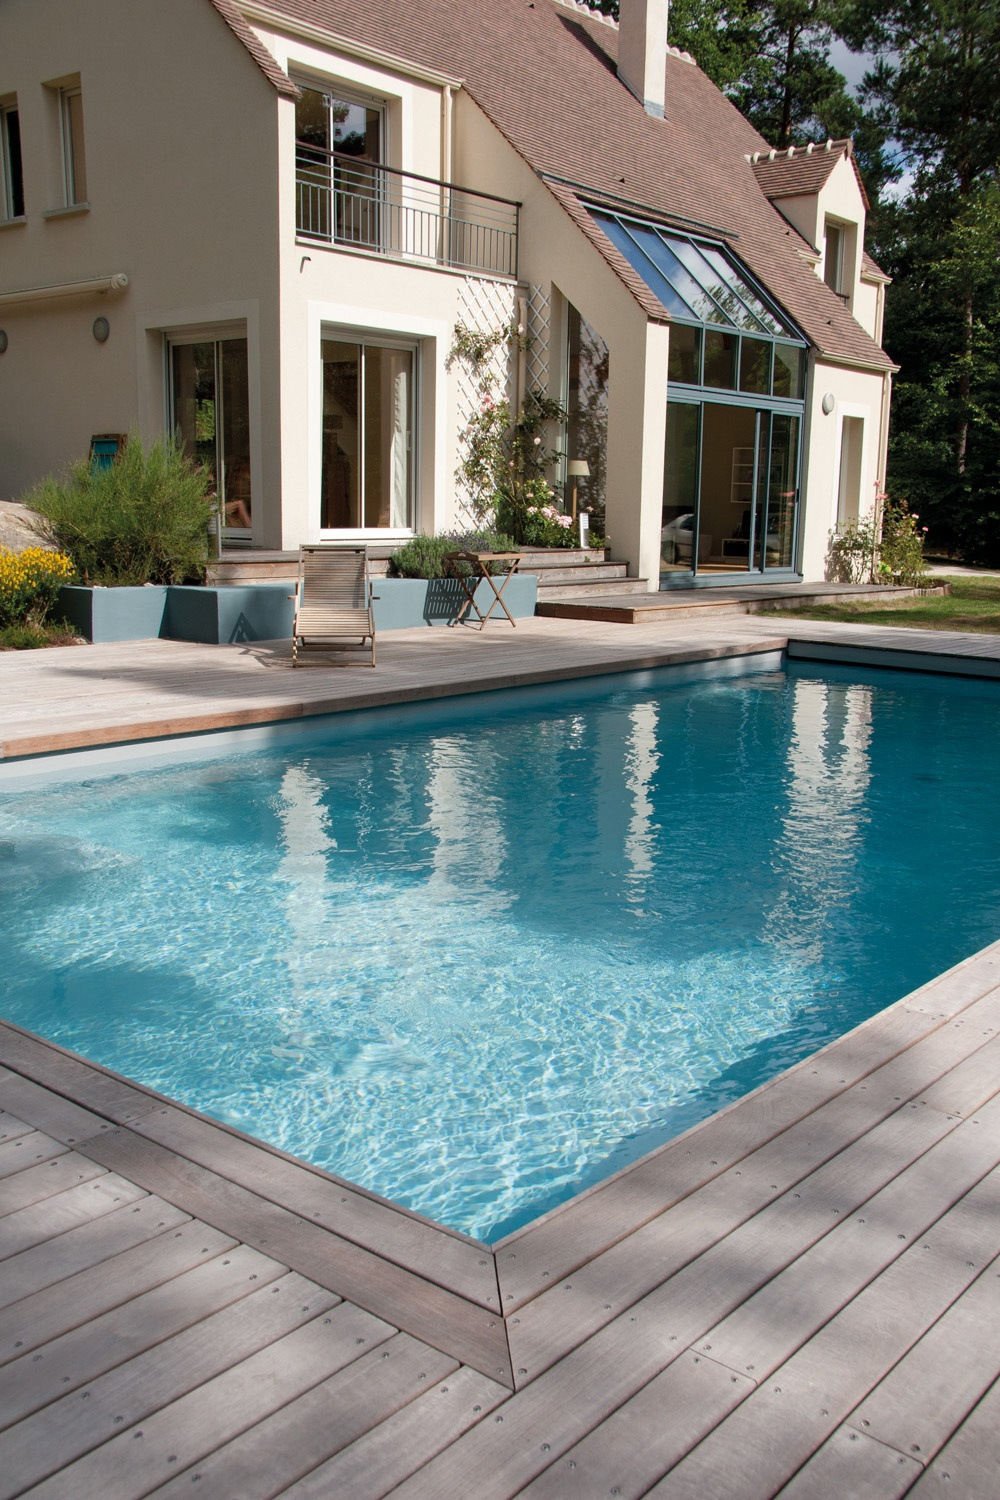 piscine avec terrasse en bois et rev tement carrelage r alis e par marinal jardin pinterest. Black Bedroom Furniture Sets. Home Design Ideas